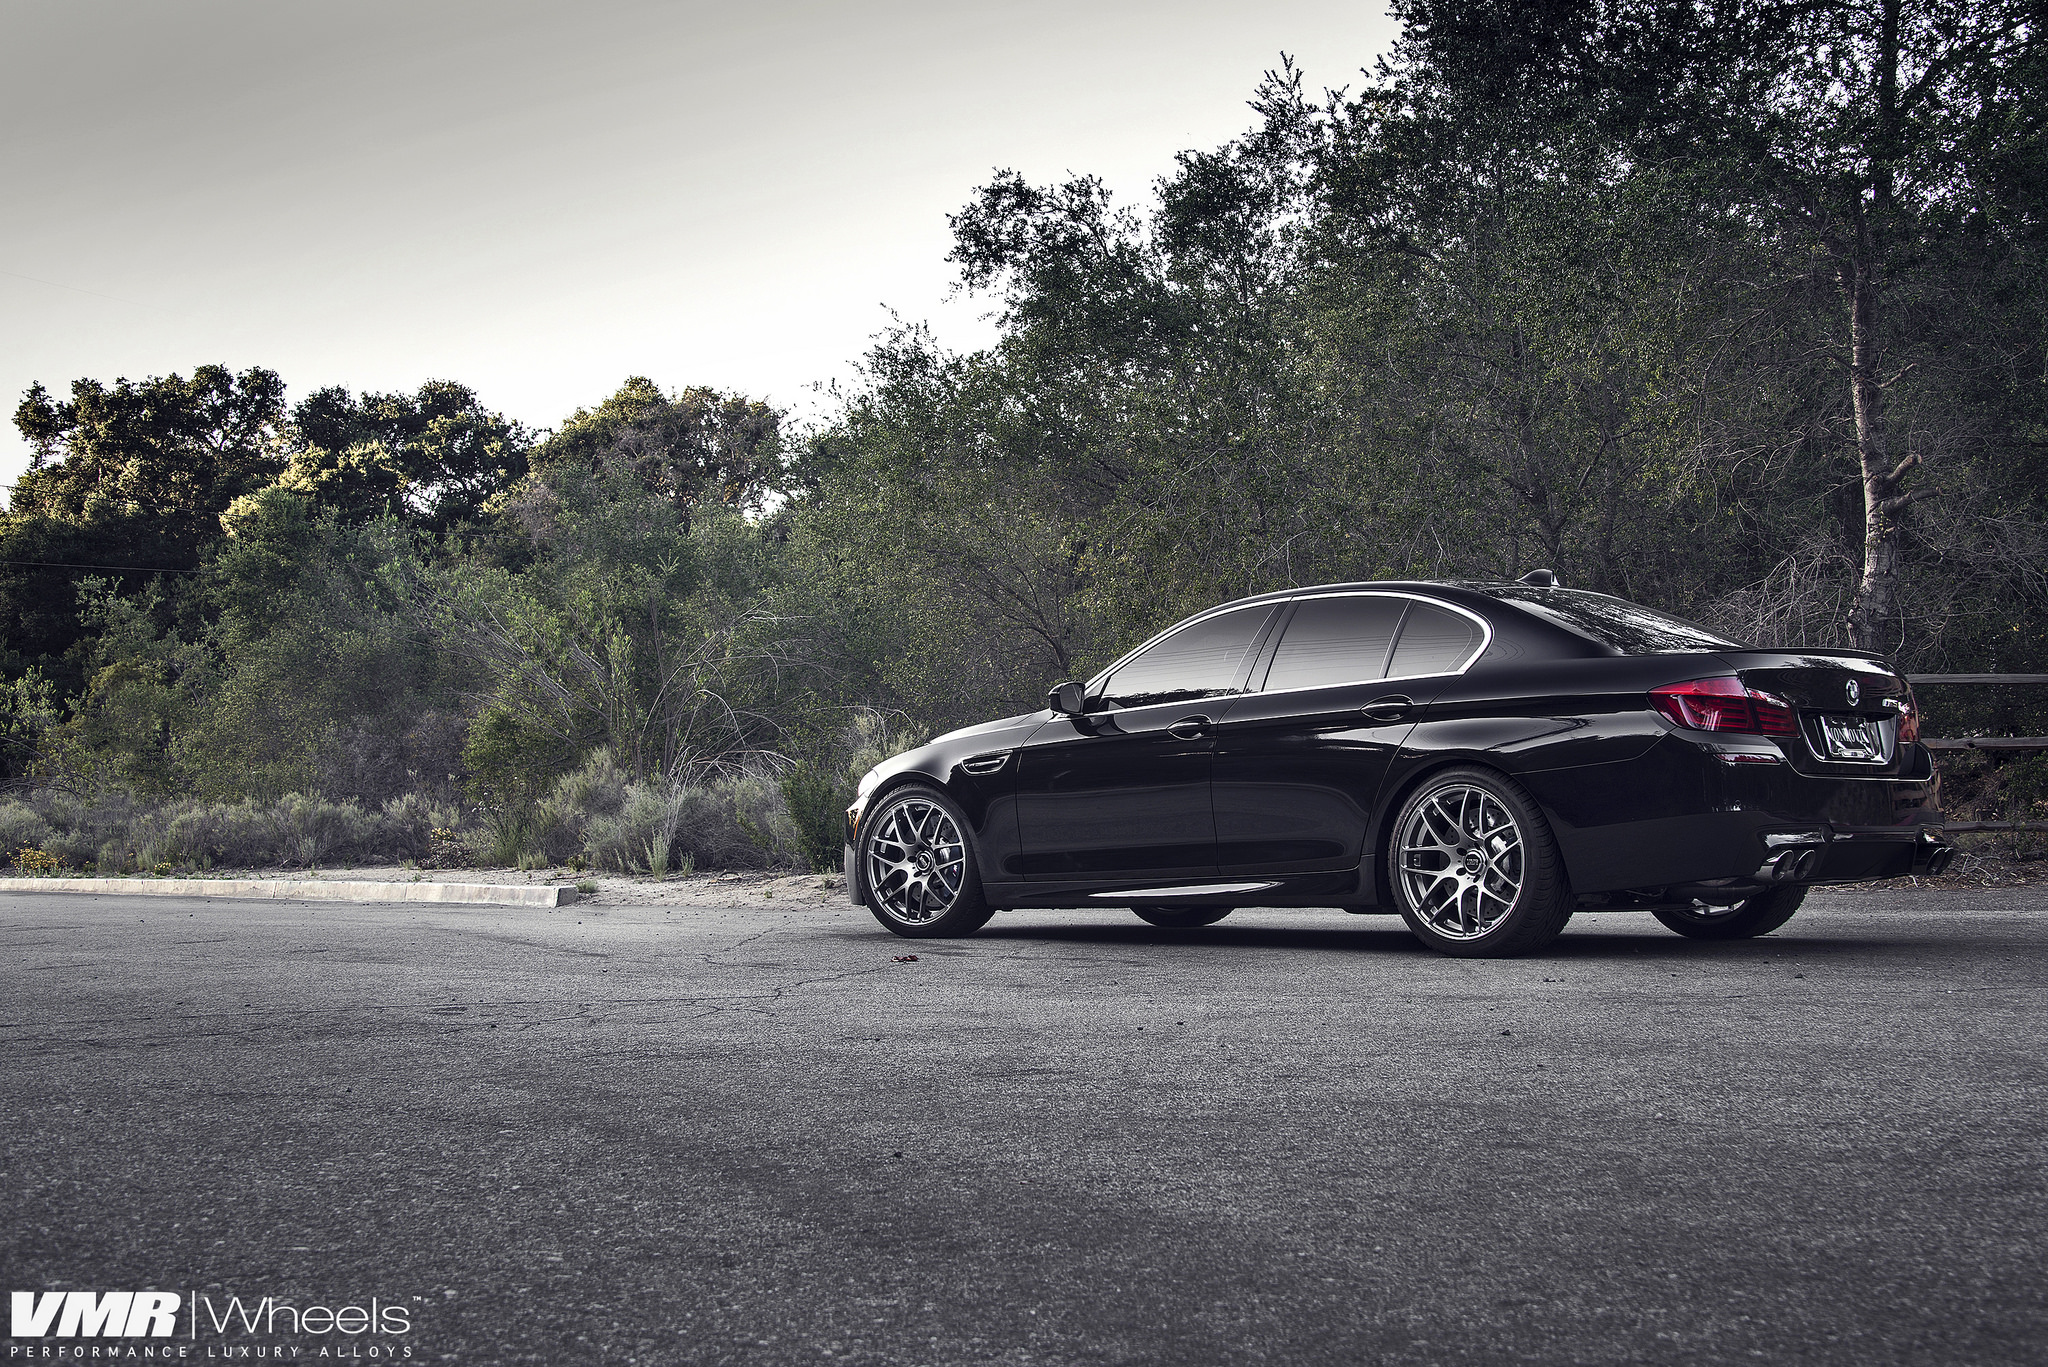 Azurite Black BMW F10 M5 Is A Definition of Beautiful 5